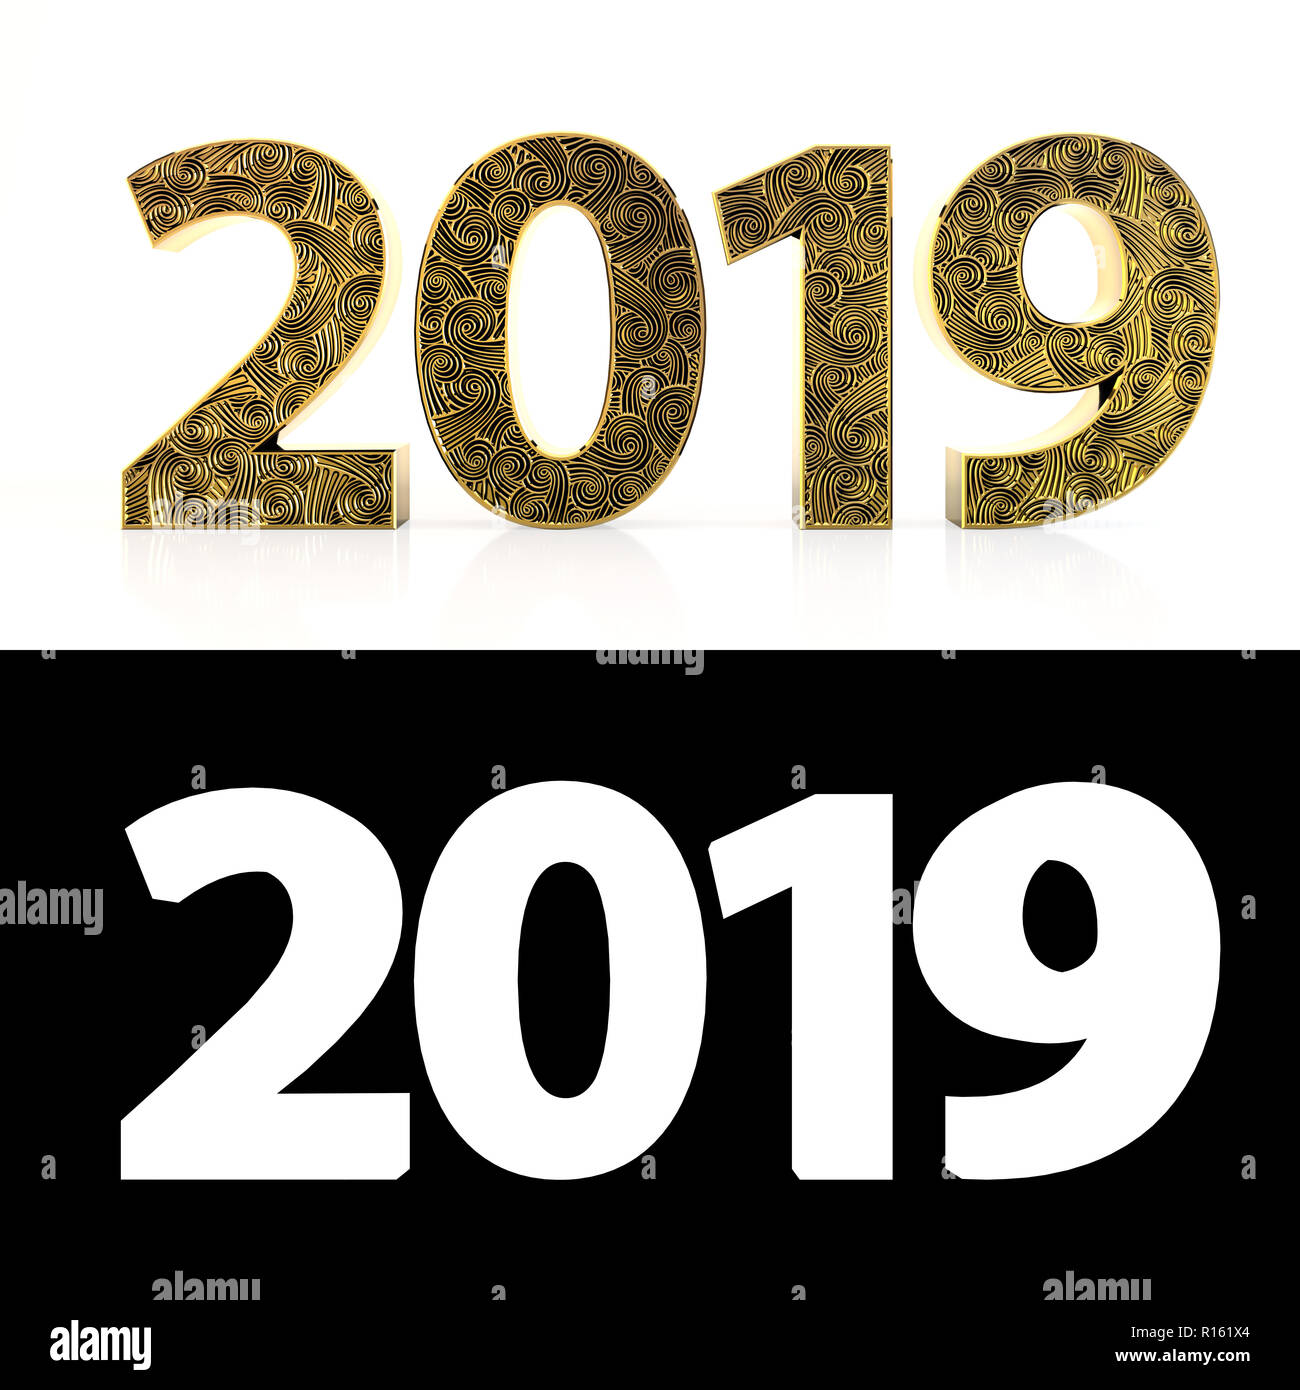 happy new year 2019 two thousand nineteen on a white background gold 3d numbers with pattern style zentangle 3d illustration